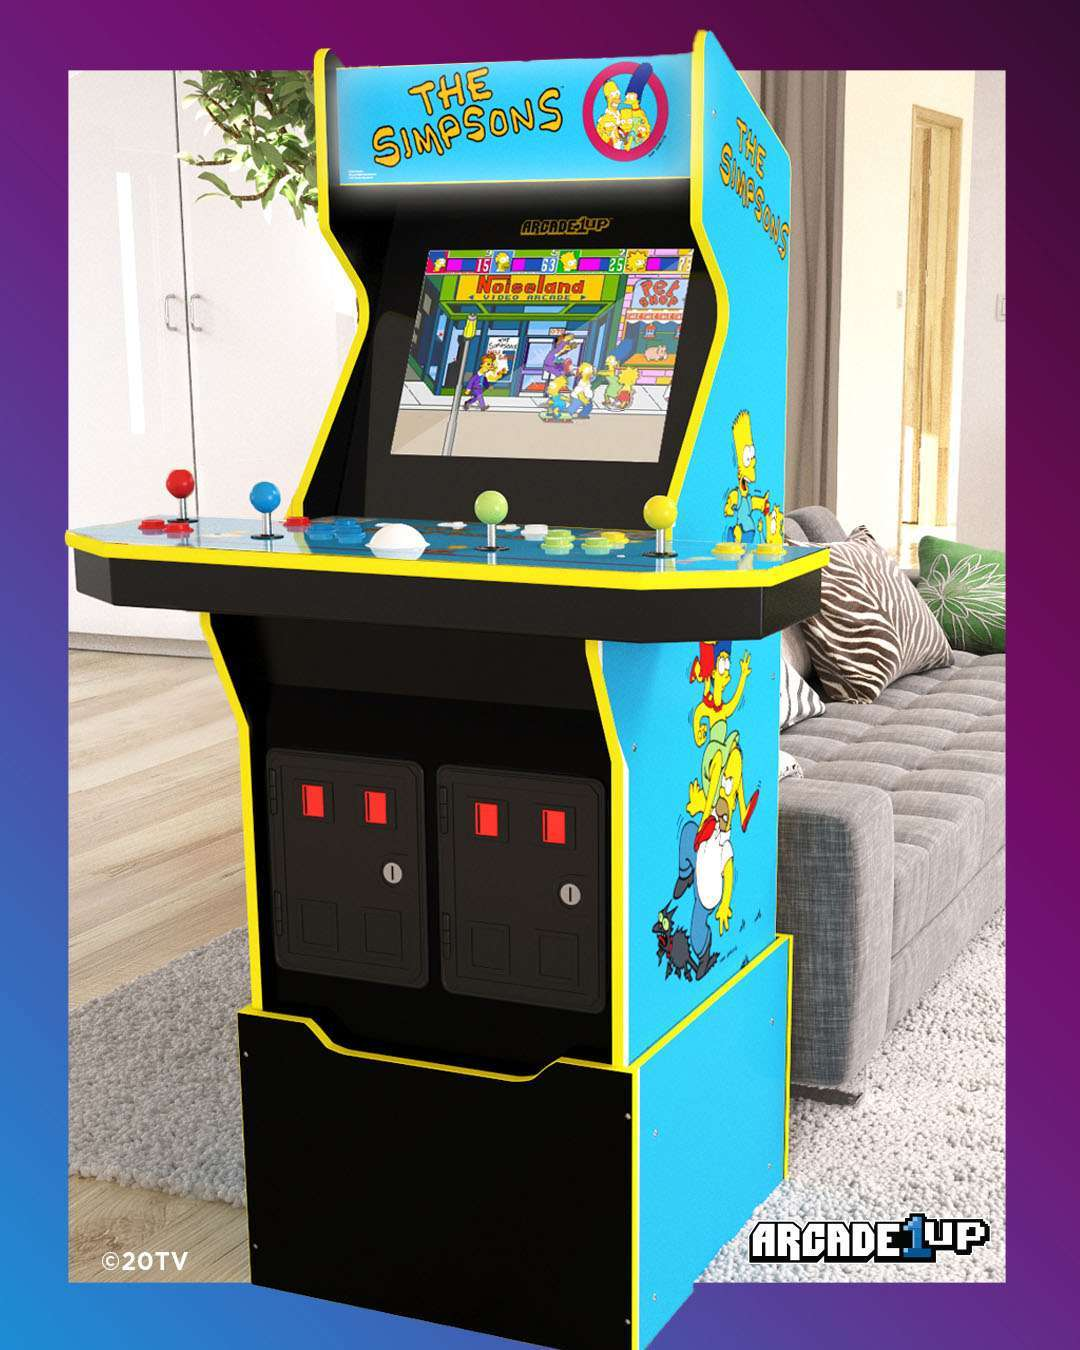 the-simpsons-arcade1up